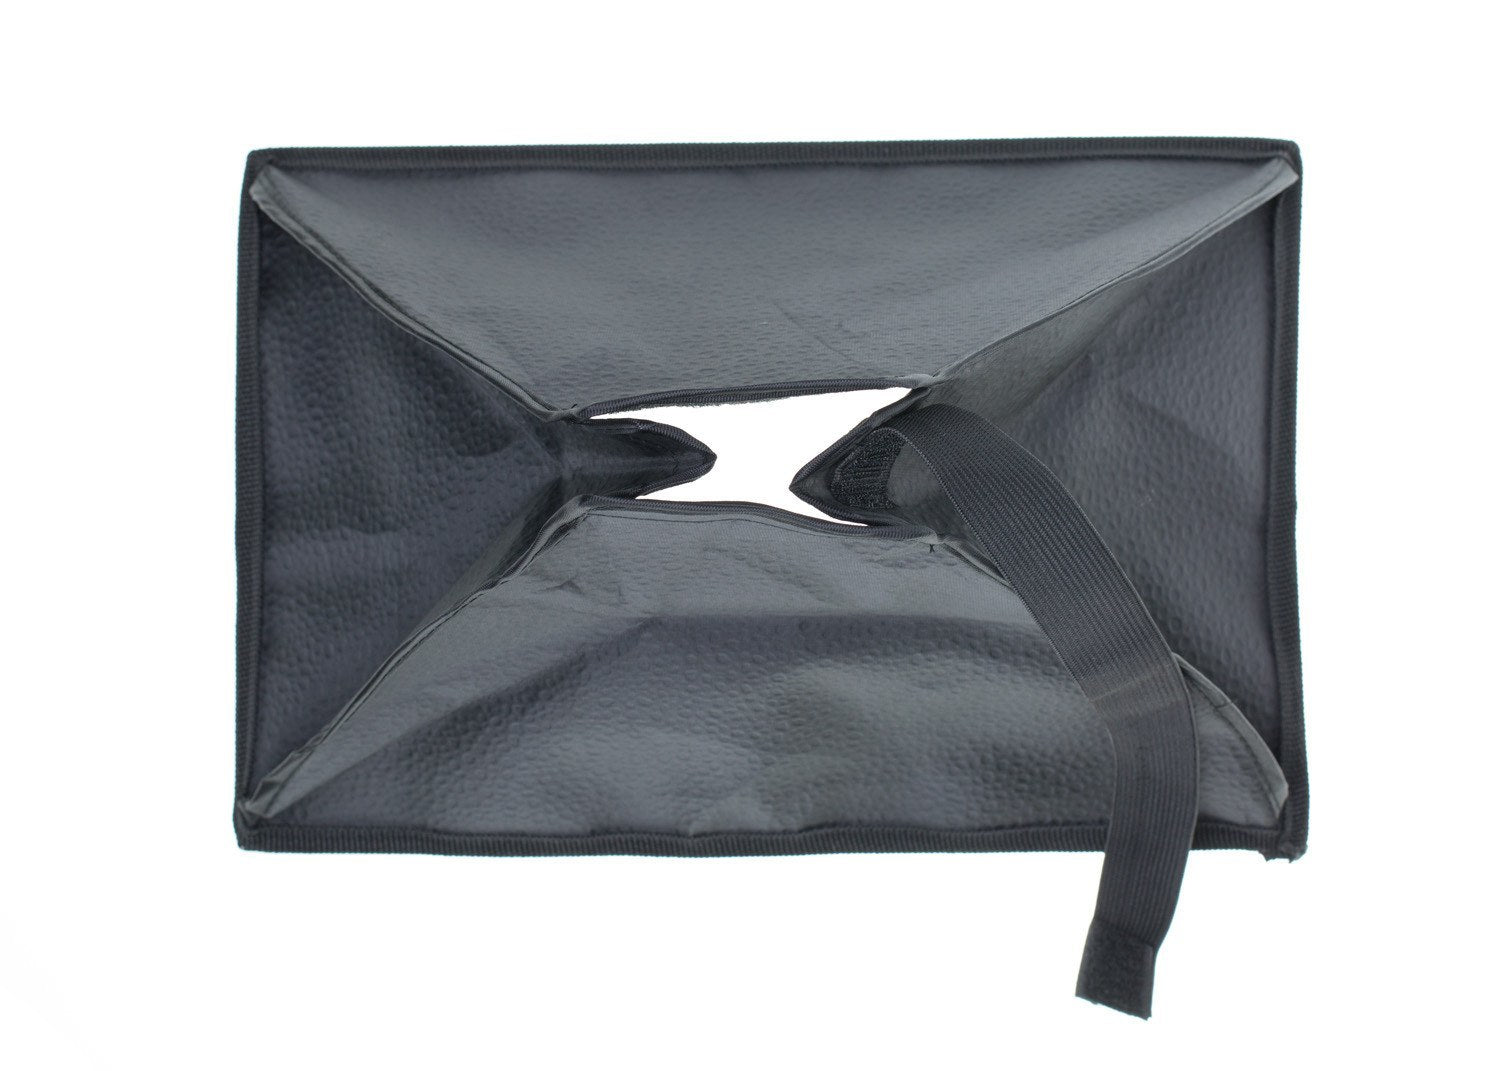 "StudioPRO Rectangle Universal Collapsible Softbox for Speedlite - 8"" x 11"" -  - 4"